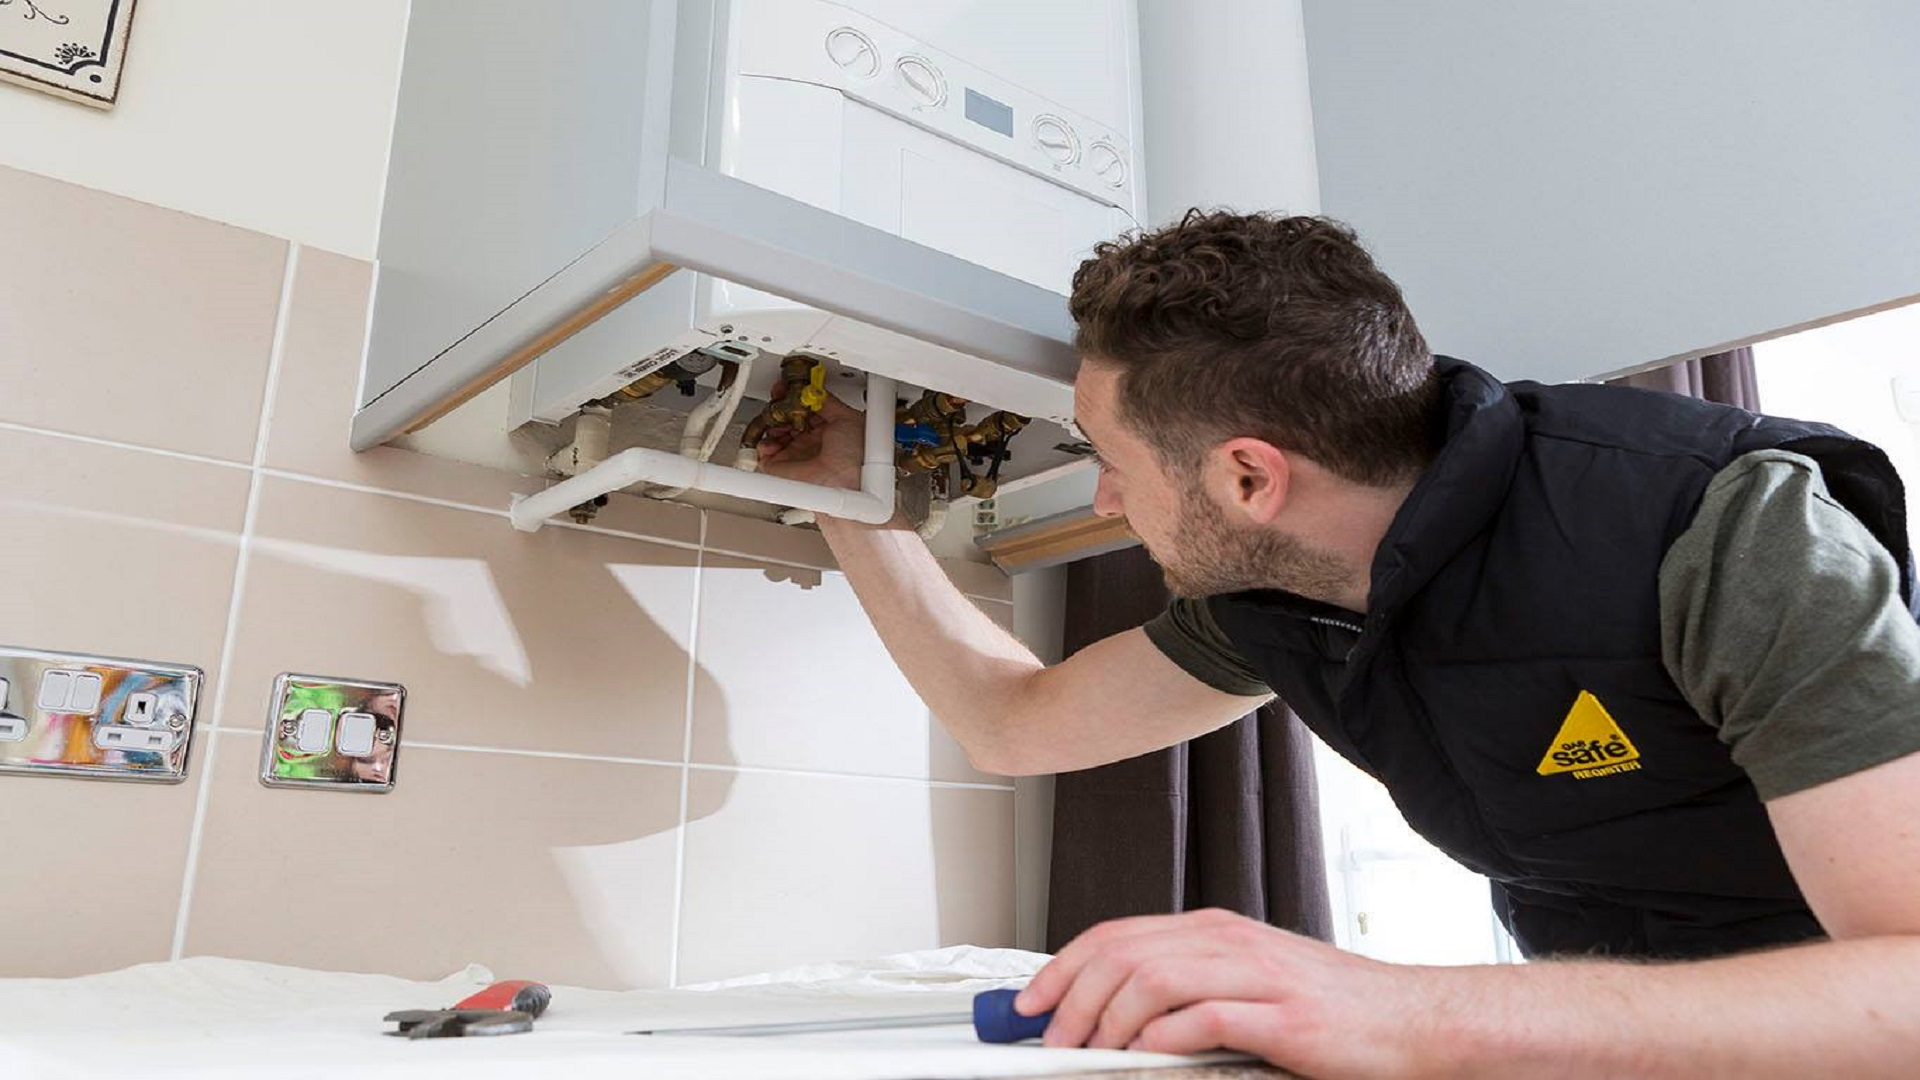 Boiler breakdown repairs and new boiler installations from ASL Plumbing